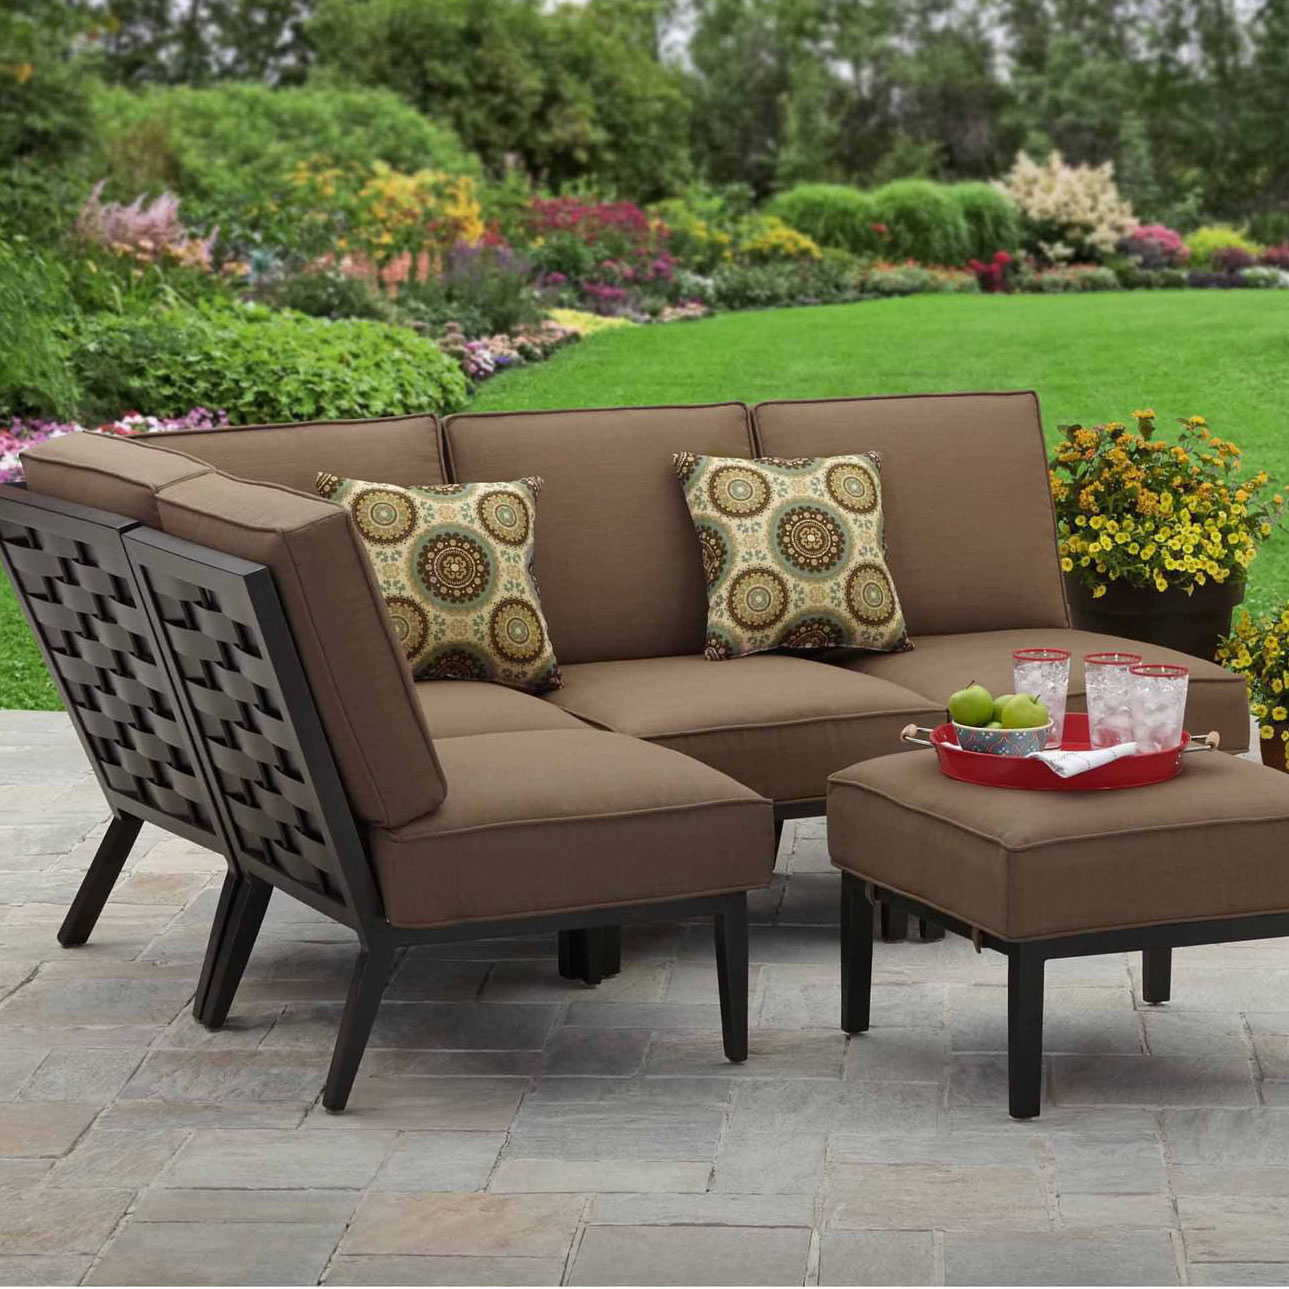 Deal of the Day: $300 Off Better Homes and Gardens 5-Piece Sectional Set